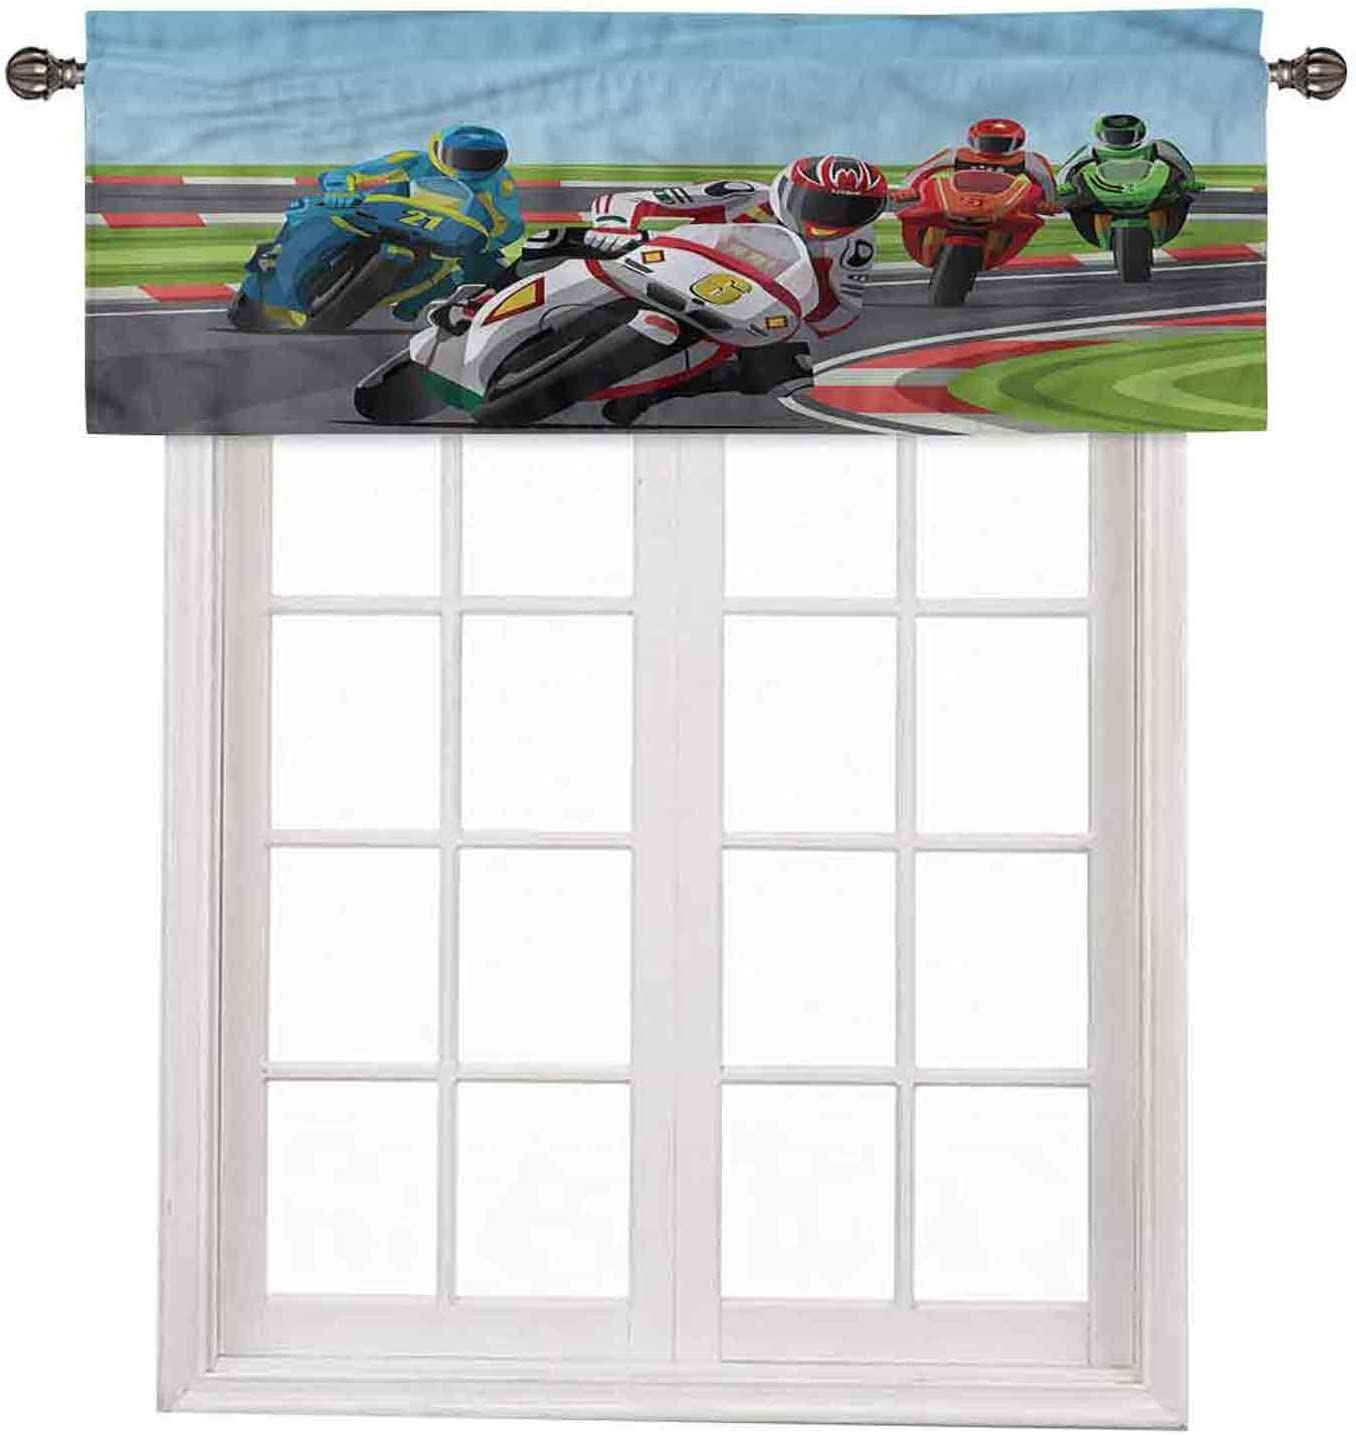 Motorcycle Curtian Drapes Valance Jacksonville Mall Trust Professional x In Racers42 18